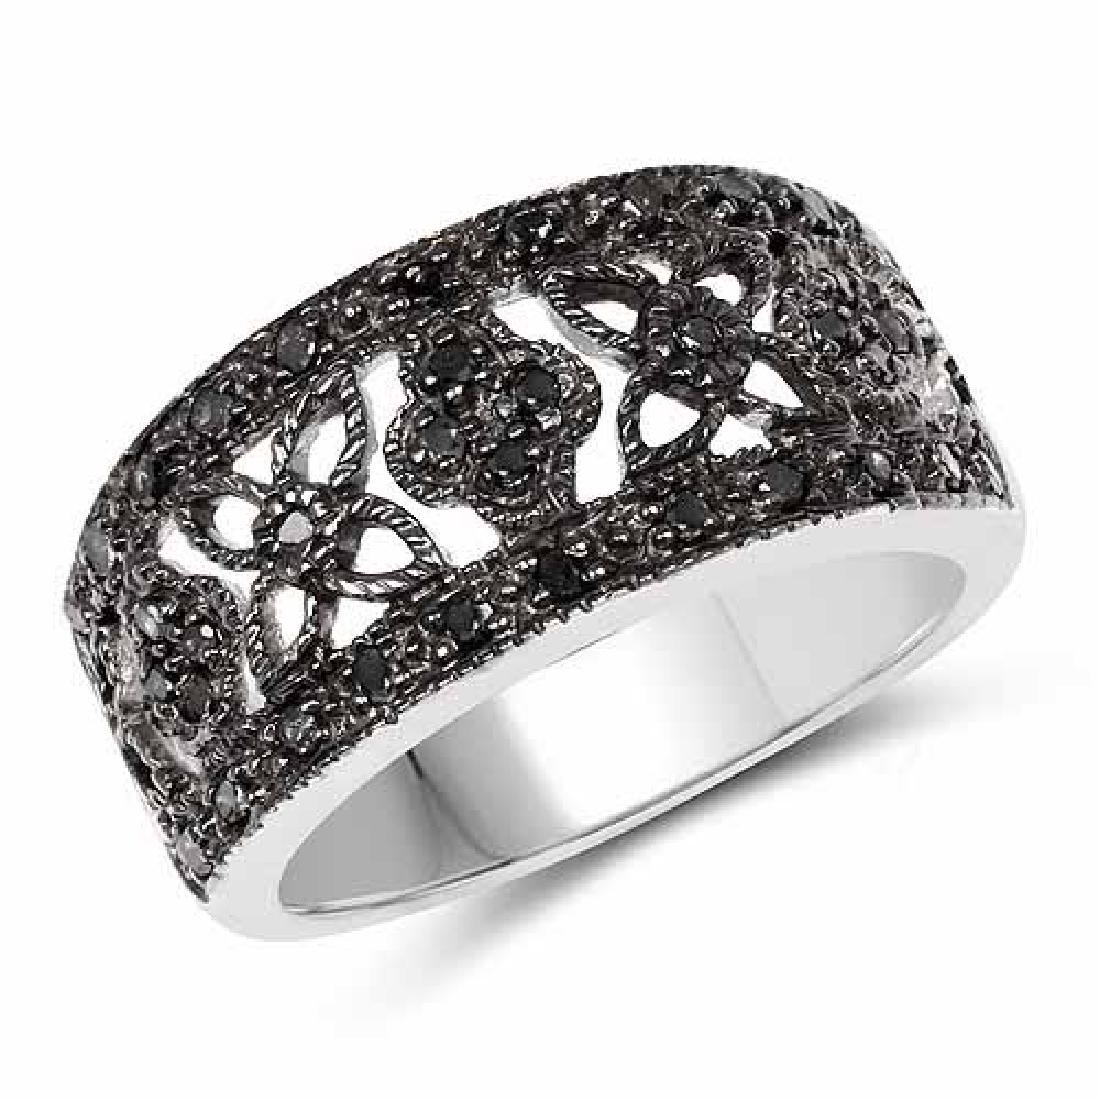 0.28 Carat Genuine Black Diamond .925 Sterling Silver R